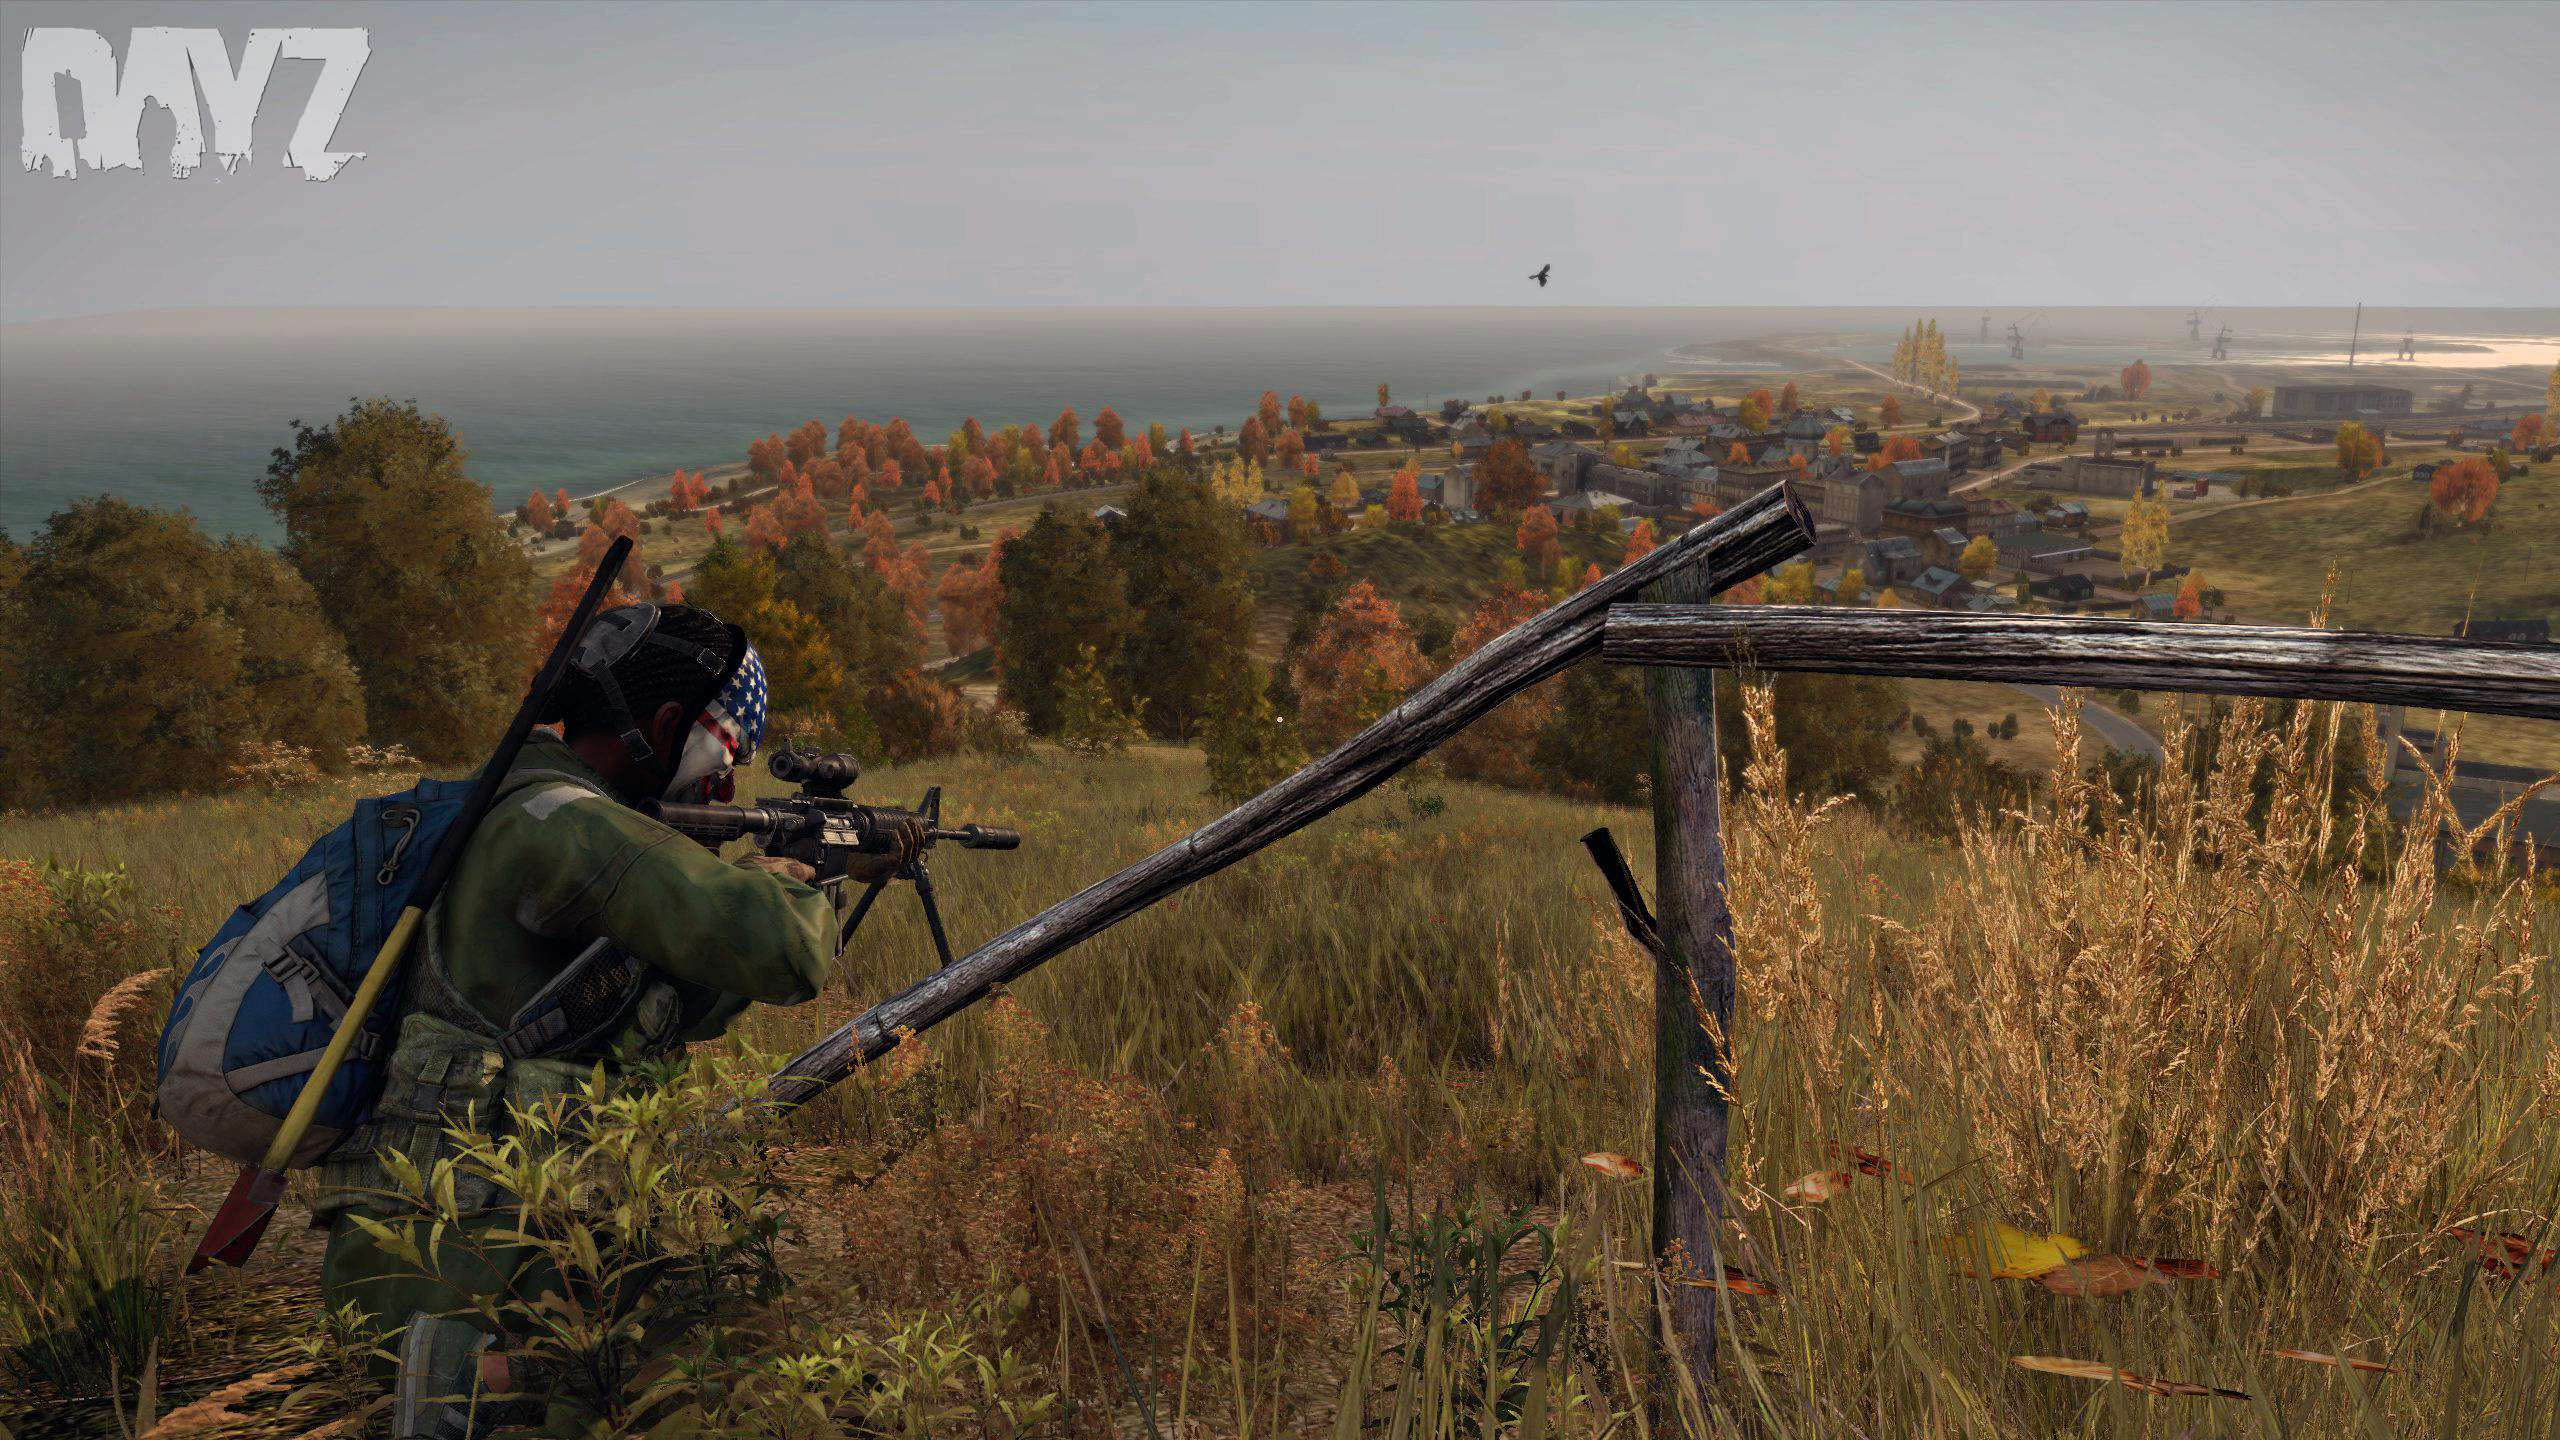 DayZ Social Experiment: Strangers Are Handed Guns, With Unsurprising Results dayz standalone wallpaper 15